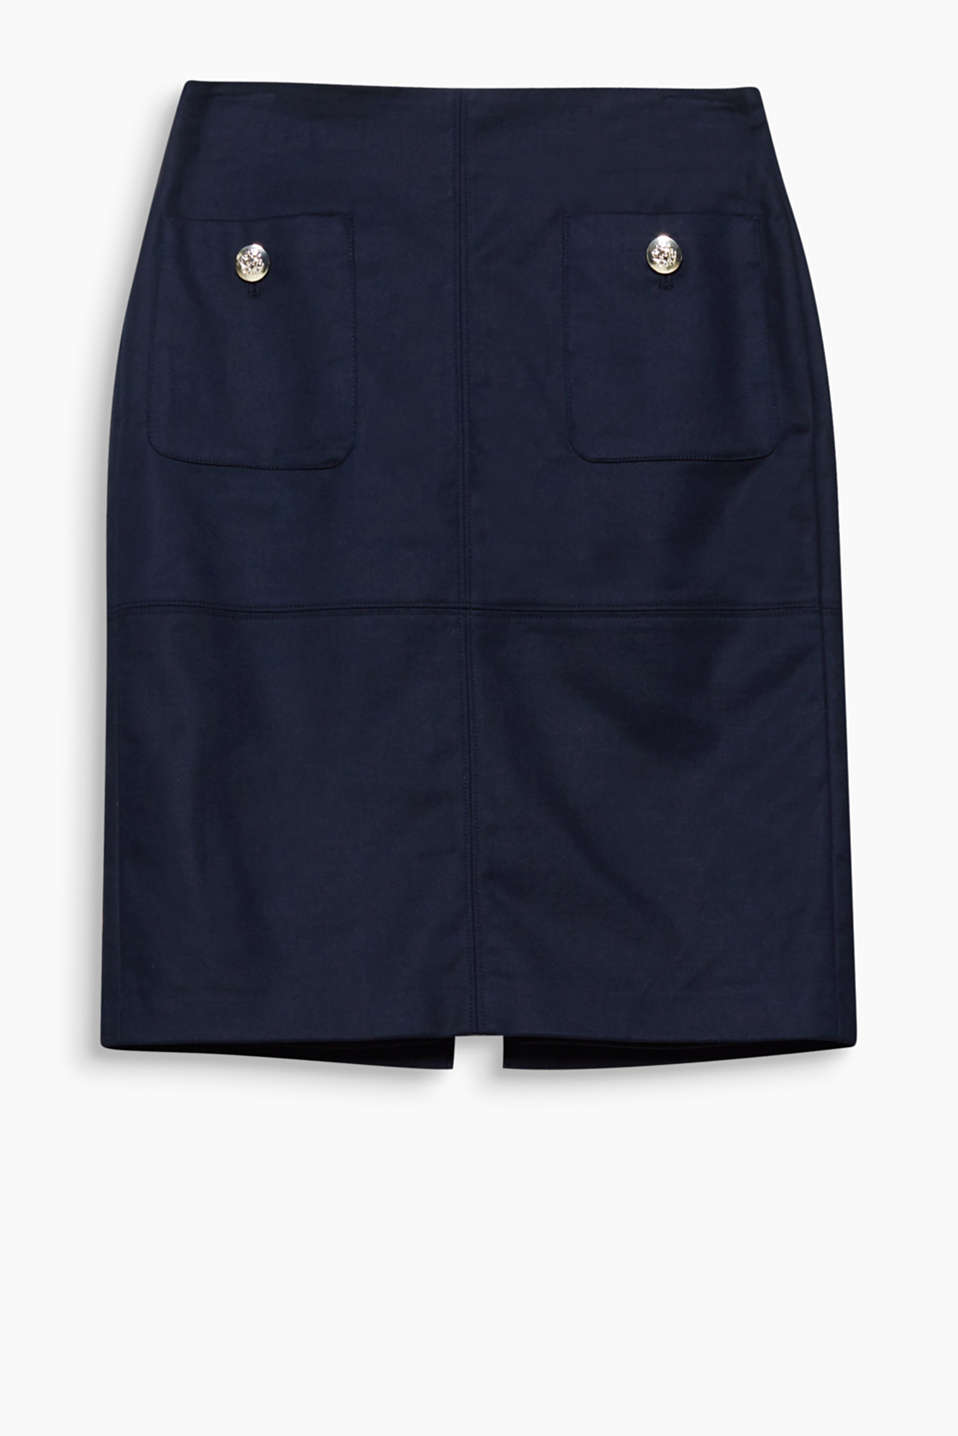 A comfortable classic! Pencil skirt made of stretch cotton with large front pockets and distinctive buttons.